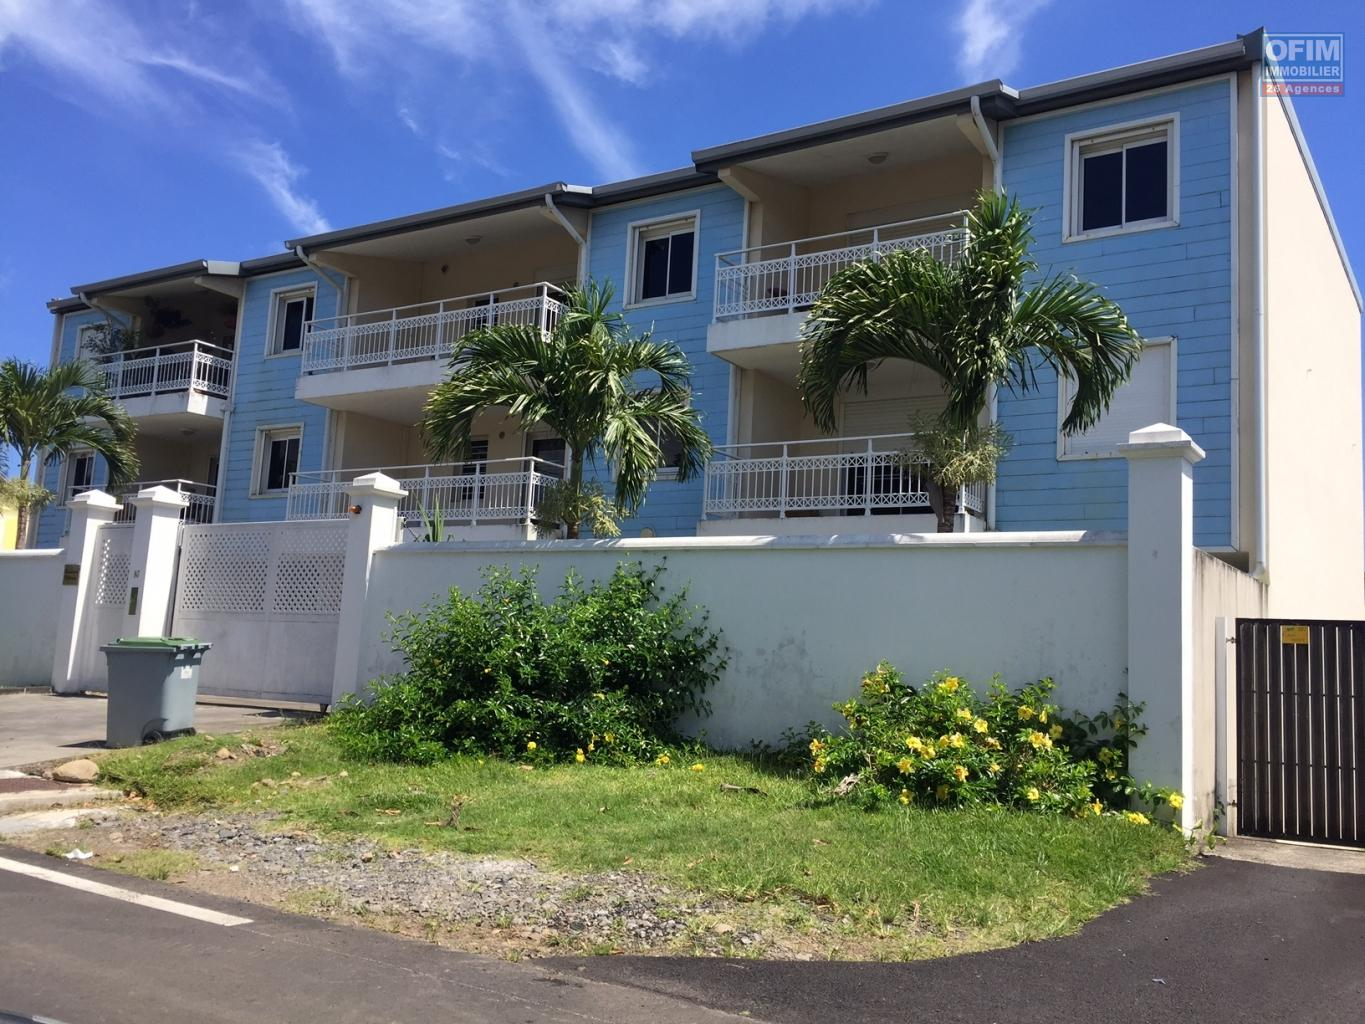 Location appartement t3 ile de la reunion